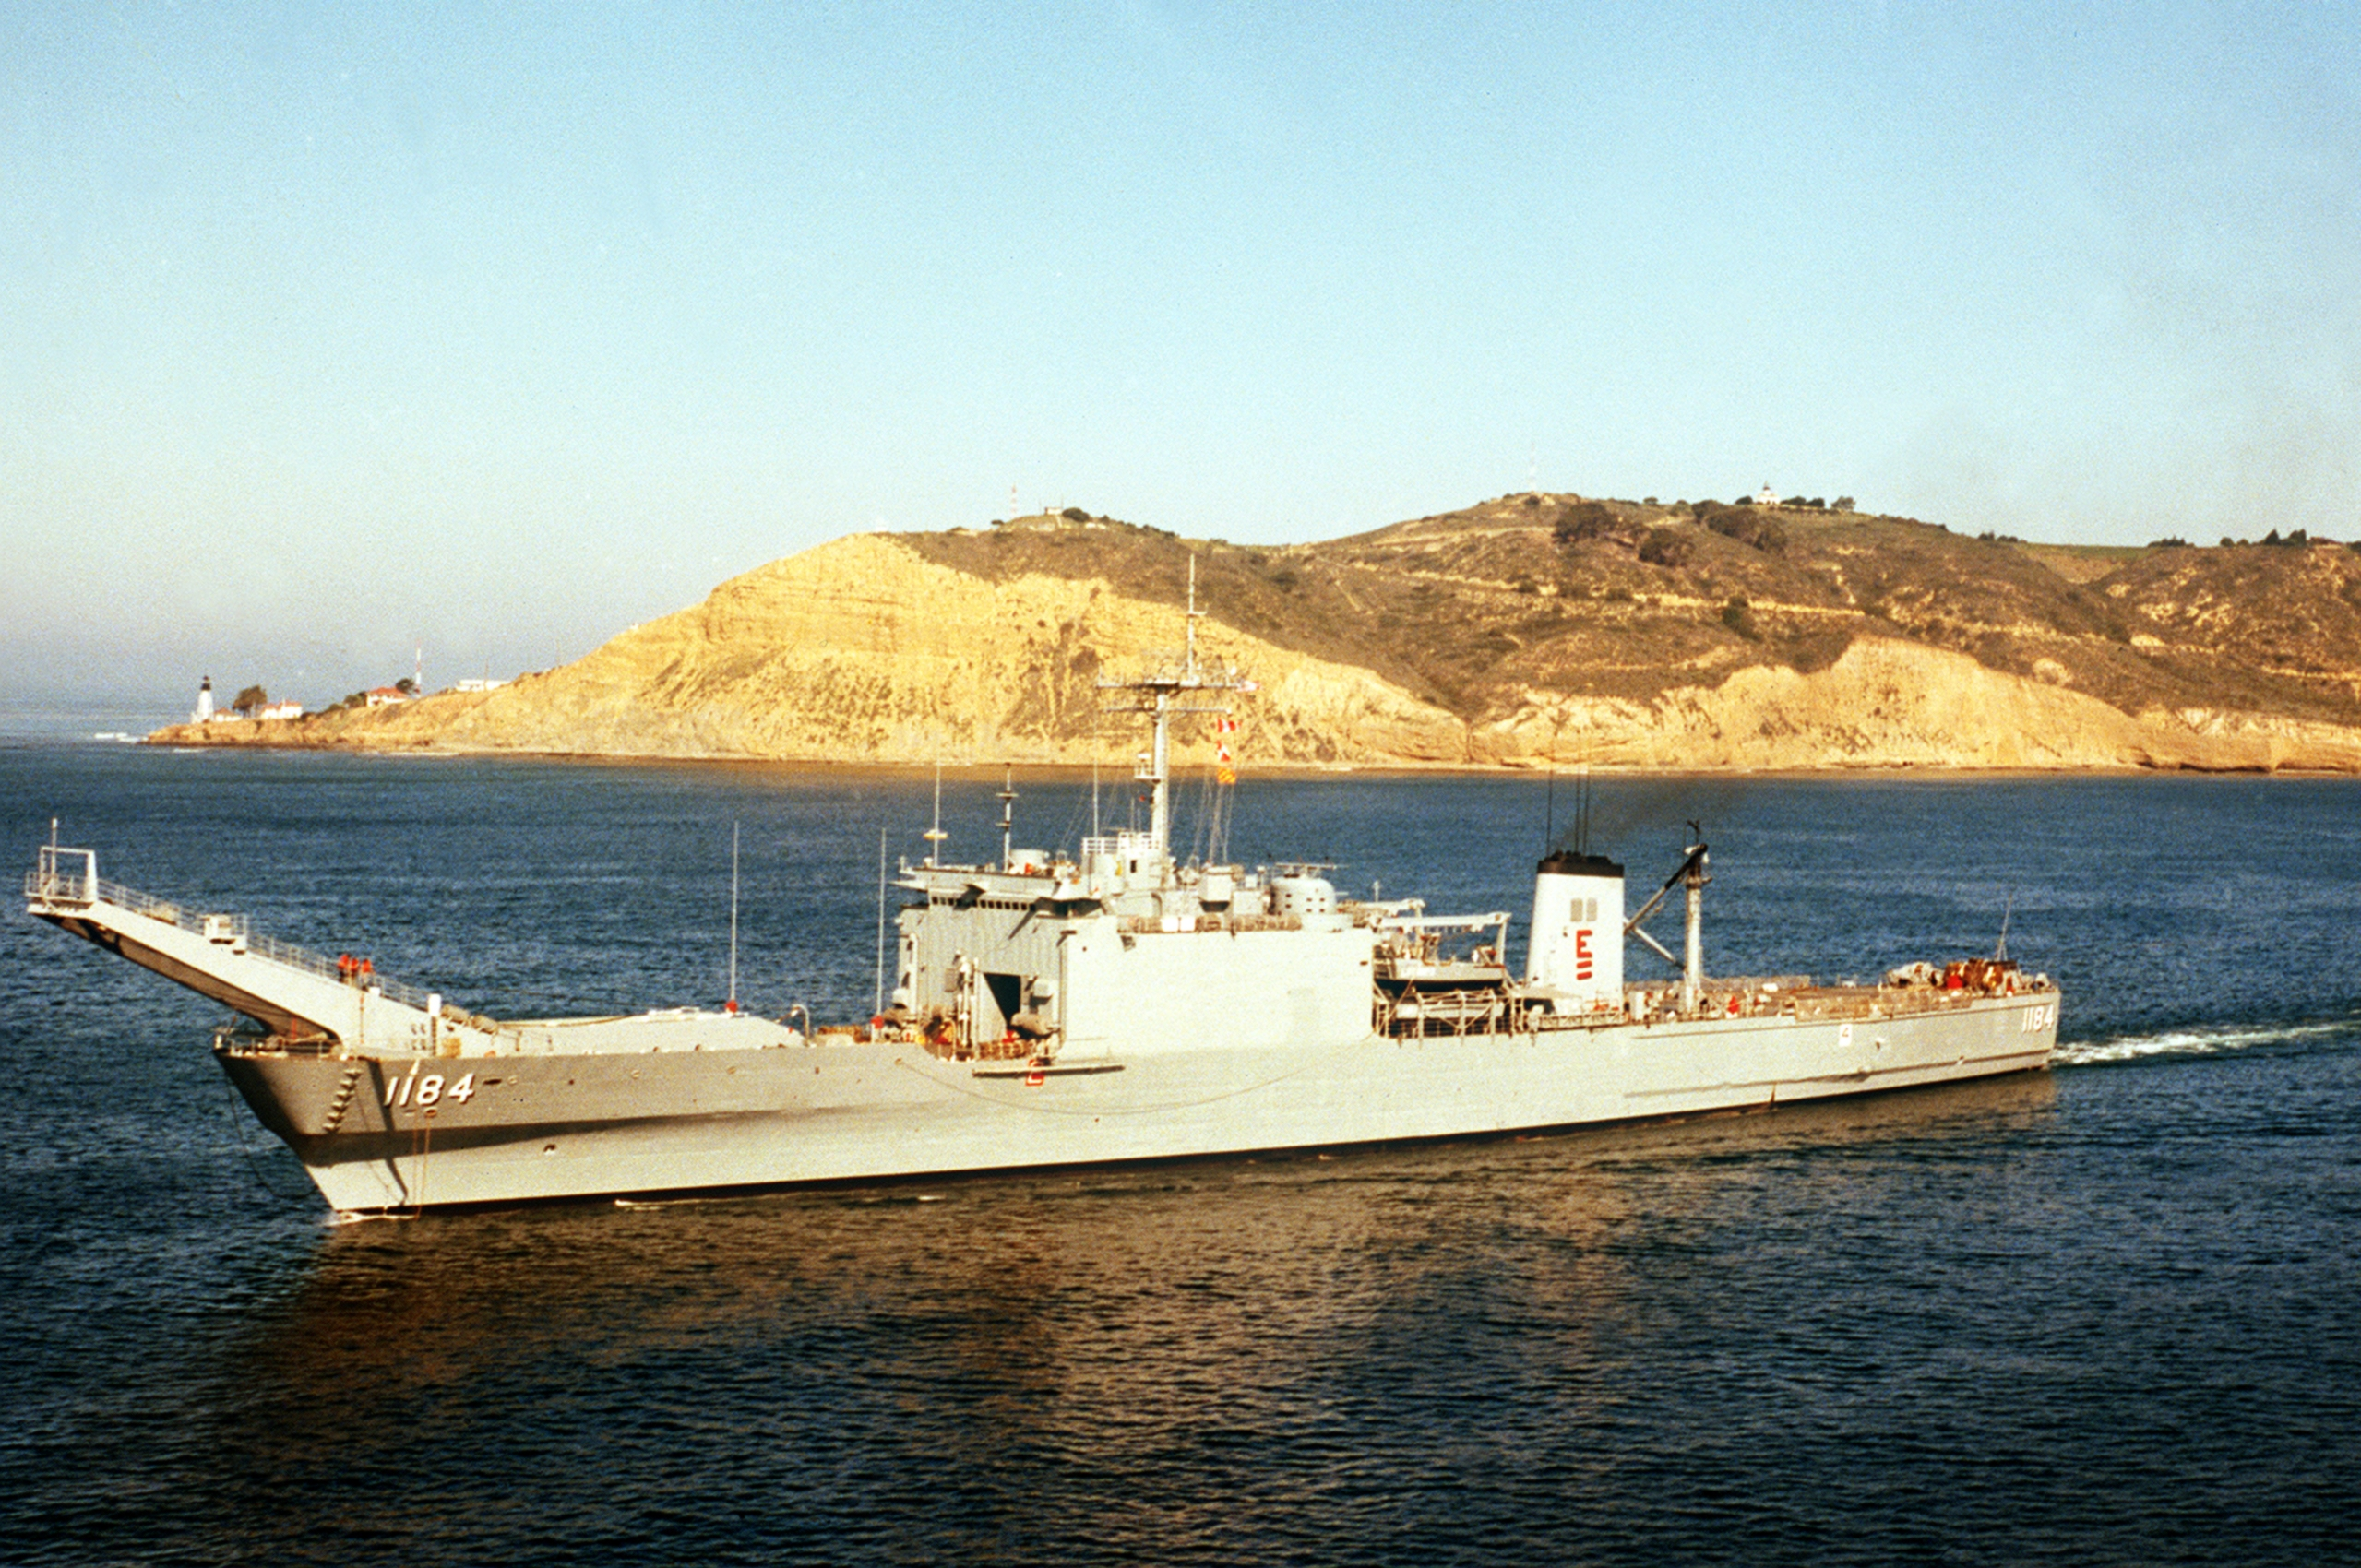 File:USS Frederick (LST-1184) underway in 1984.jpg